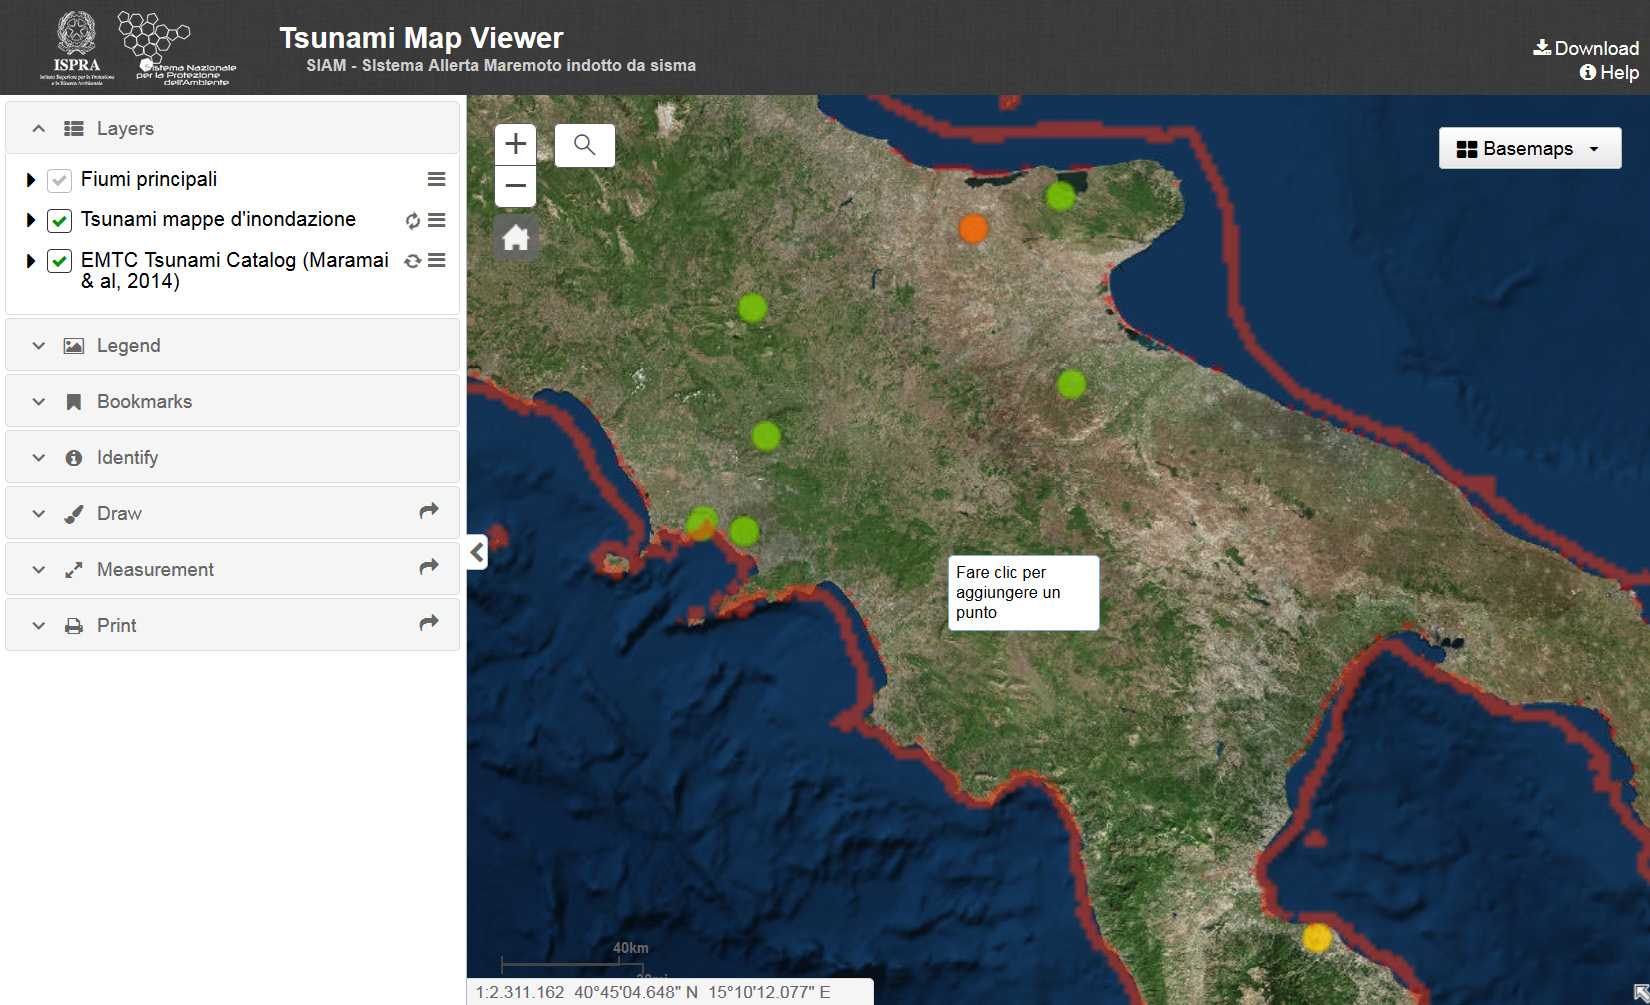 Tsunami Map Viewer